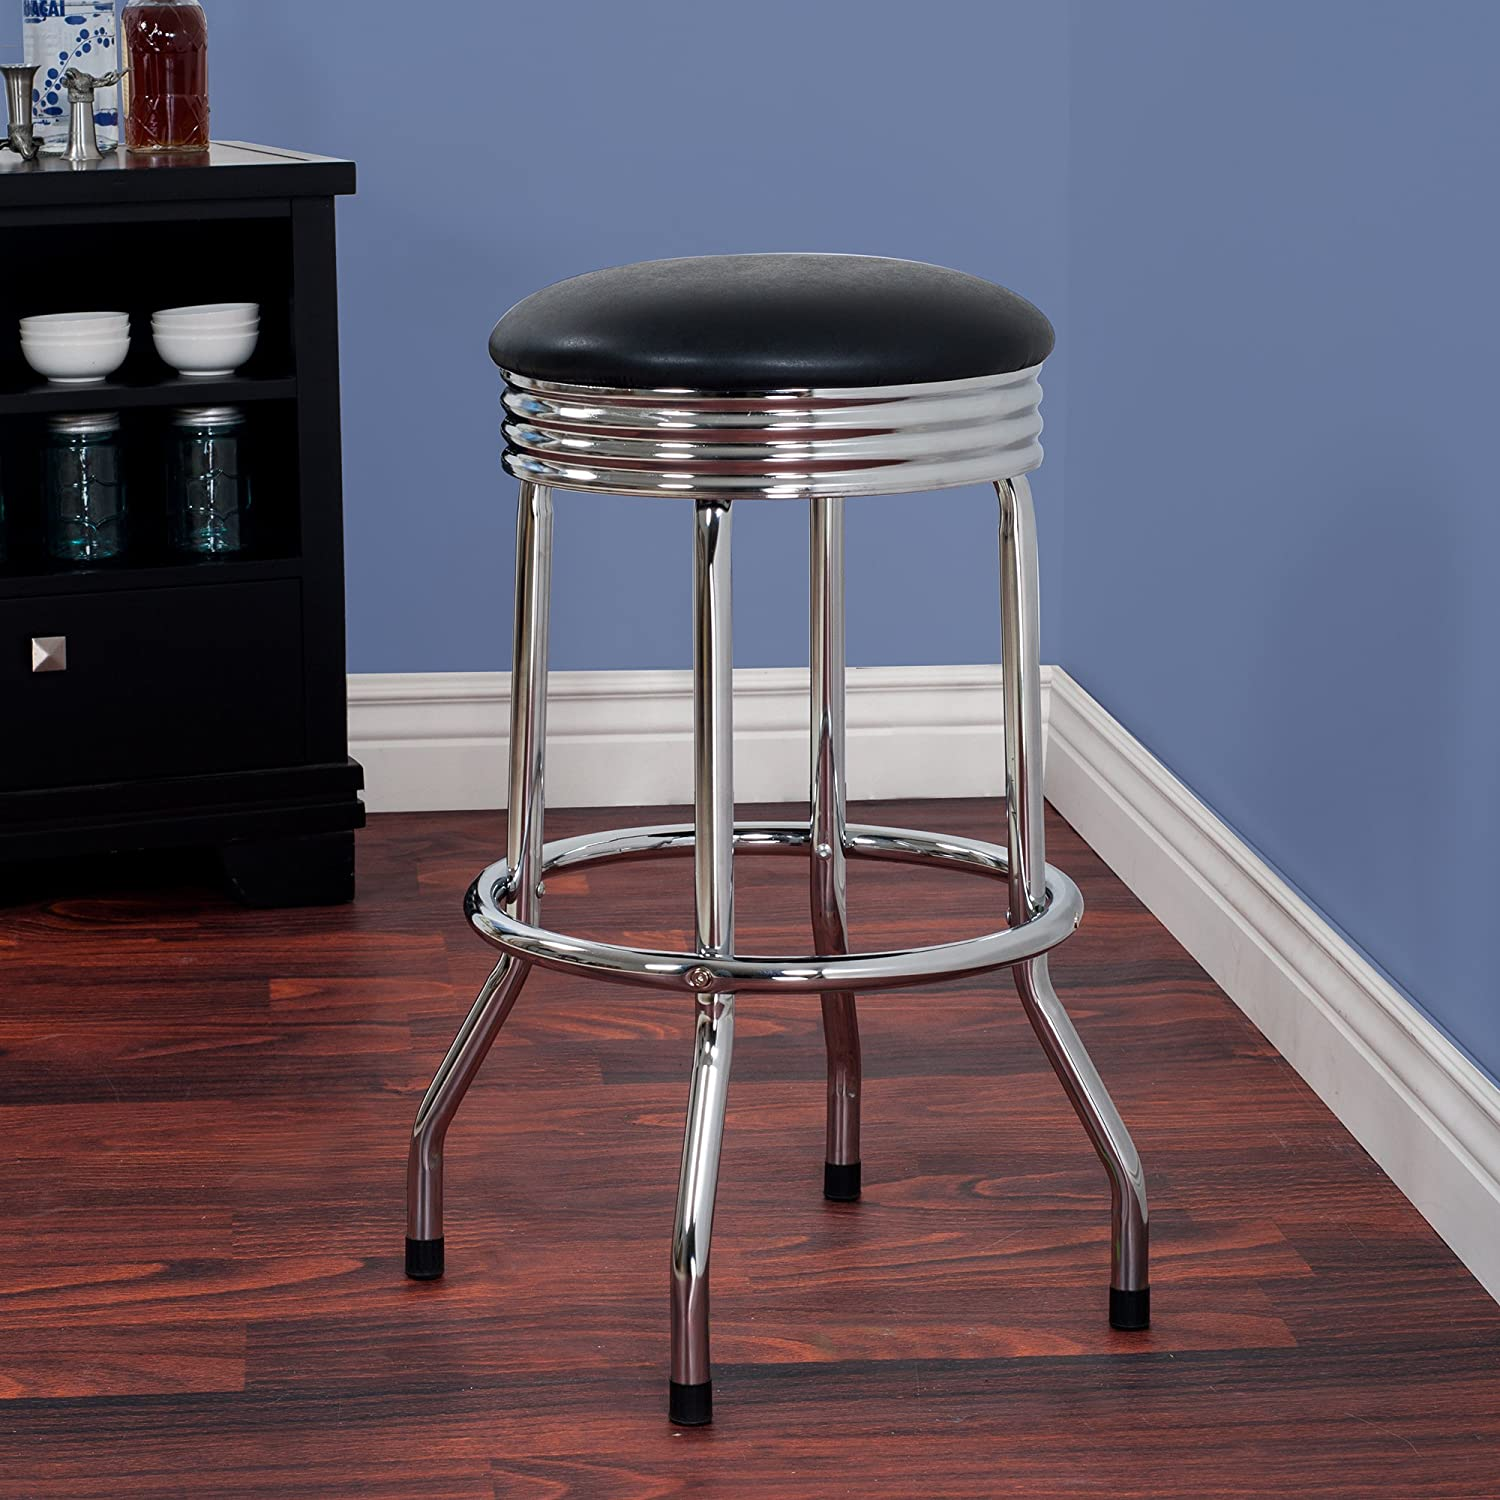 Chrome Everyday Home Trademark Gameroom Retro Ribbed Swivel Bar Stool